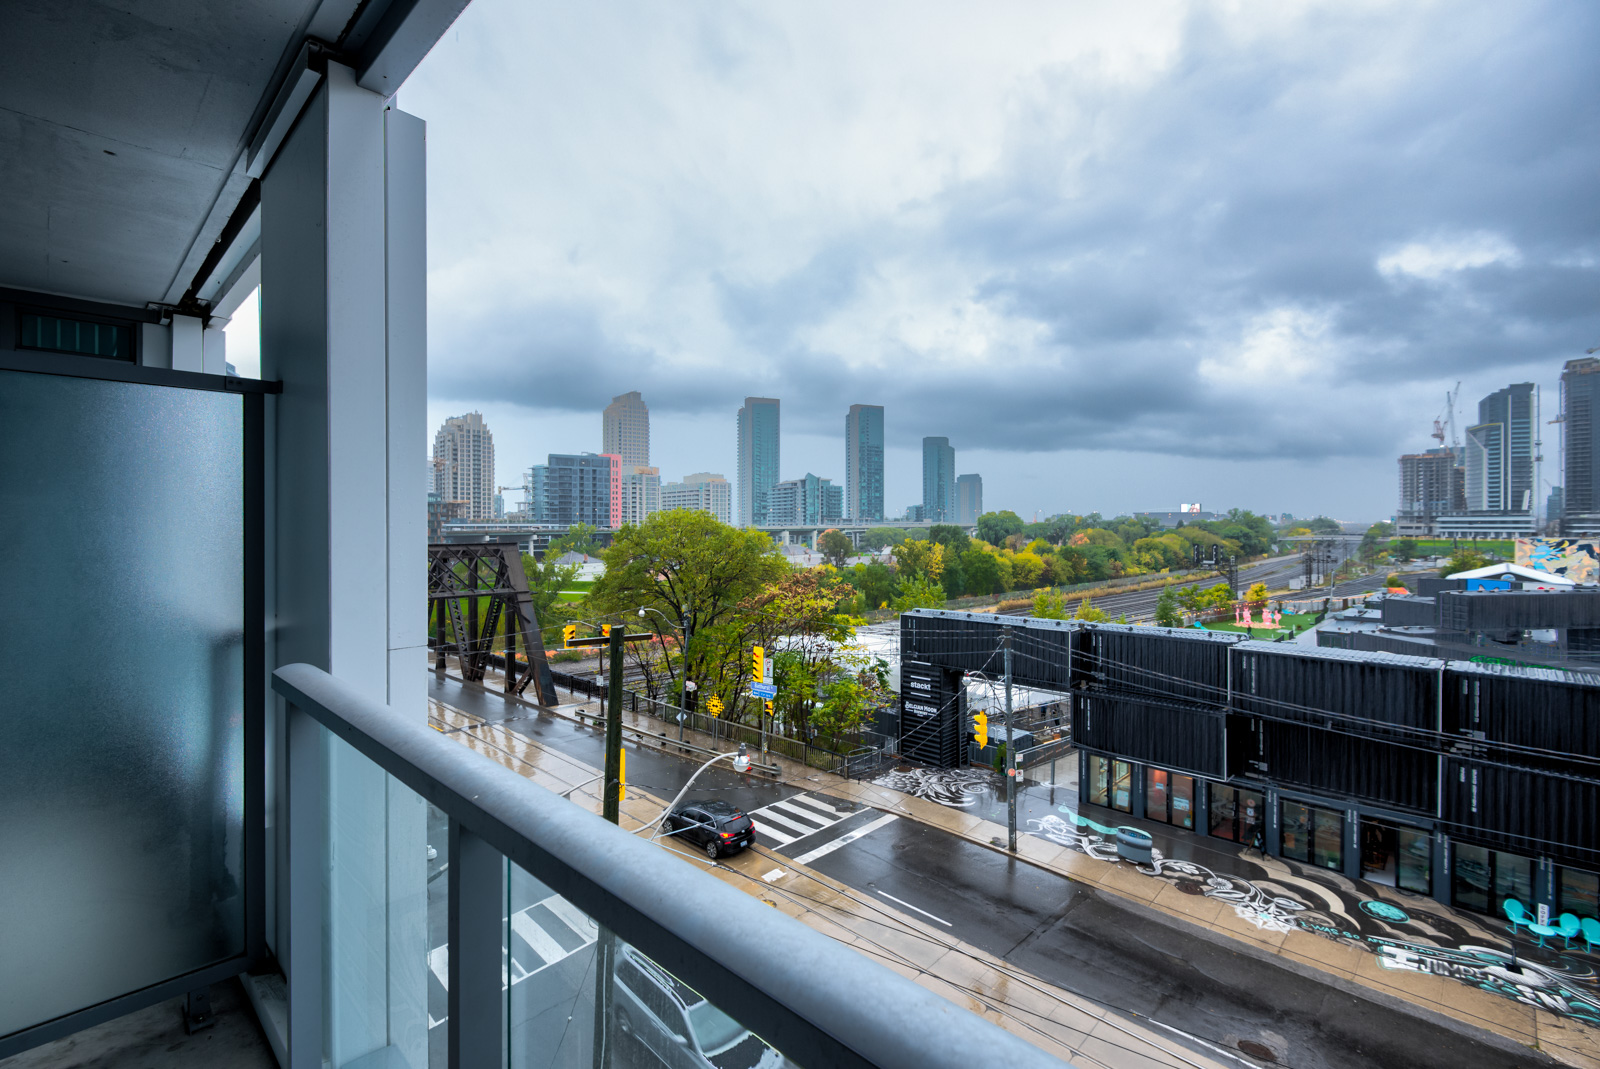 Balcony view from Minto Condos of distant buildings, cloudy skies and slippery, rain-soaked Bathurst St.